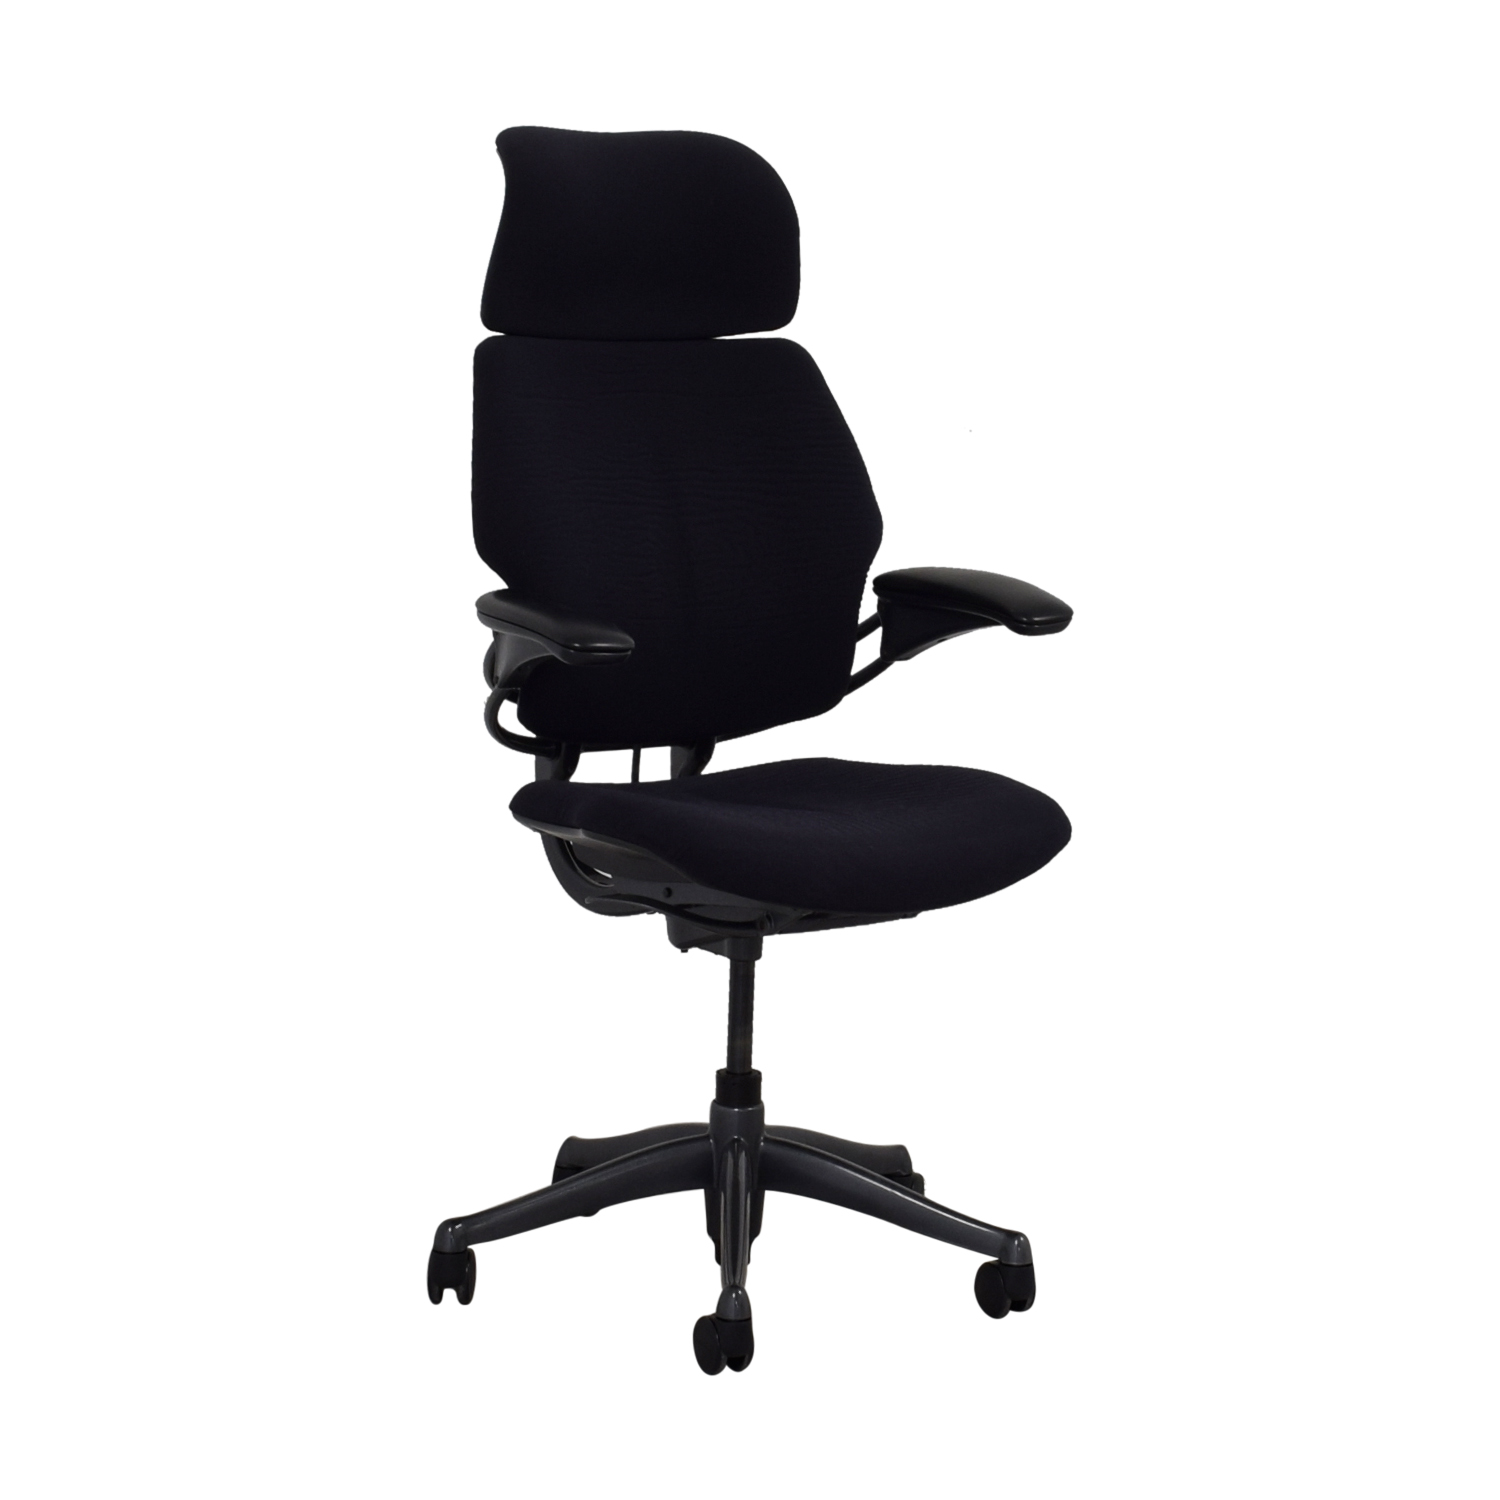 Humanscale Liberty Chair 63 Off Humanscale Humanscale Freedom Chair With